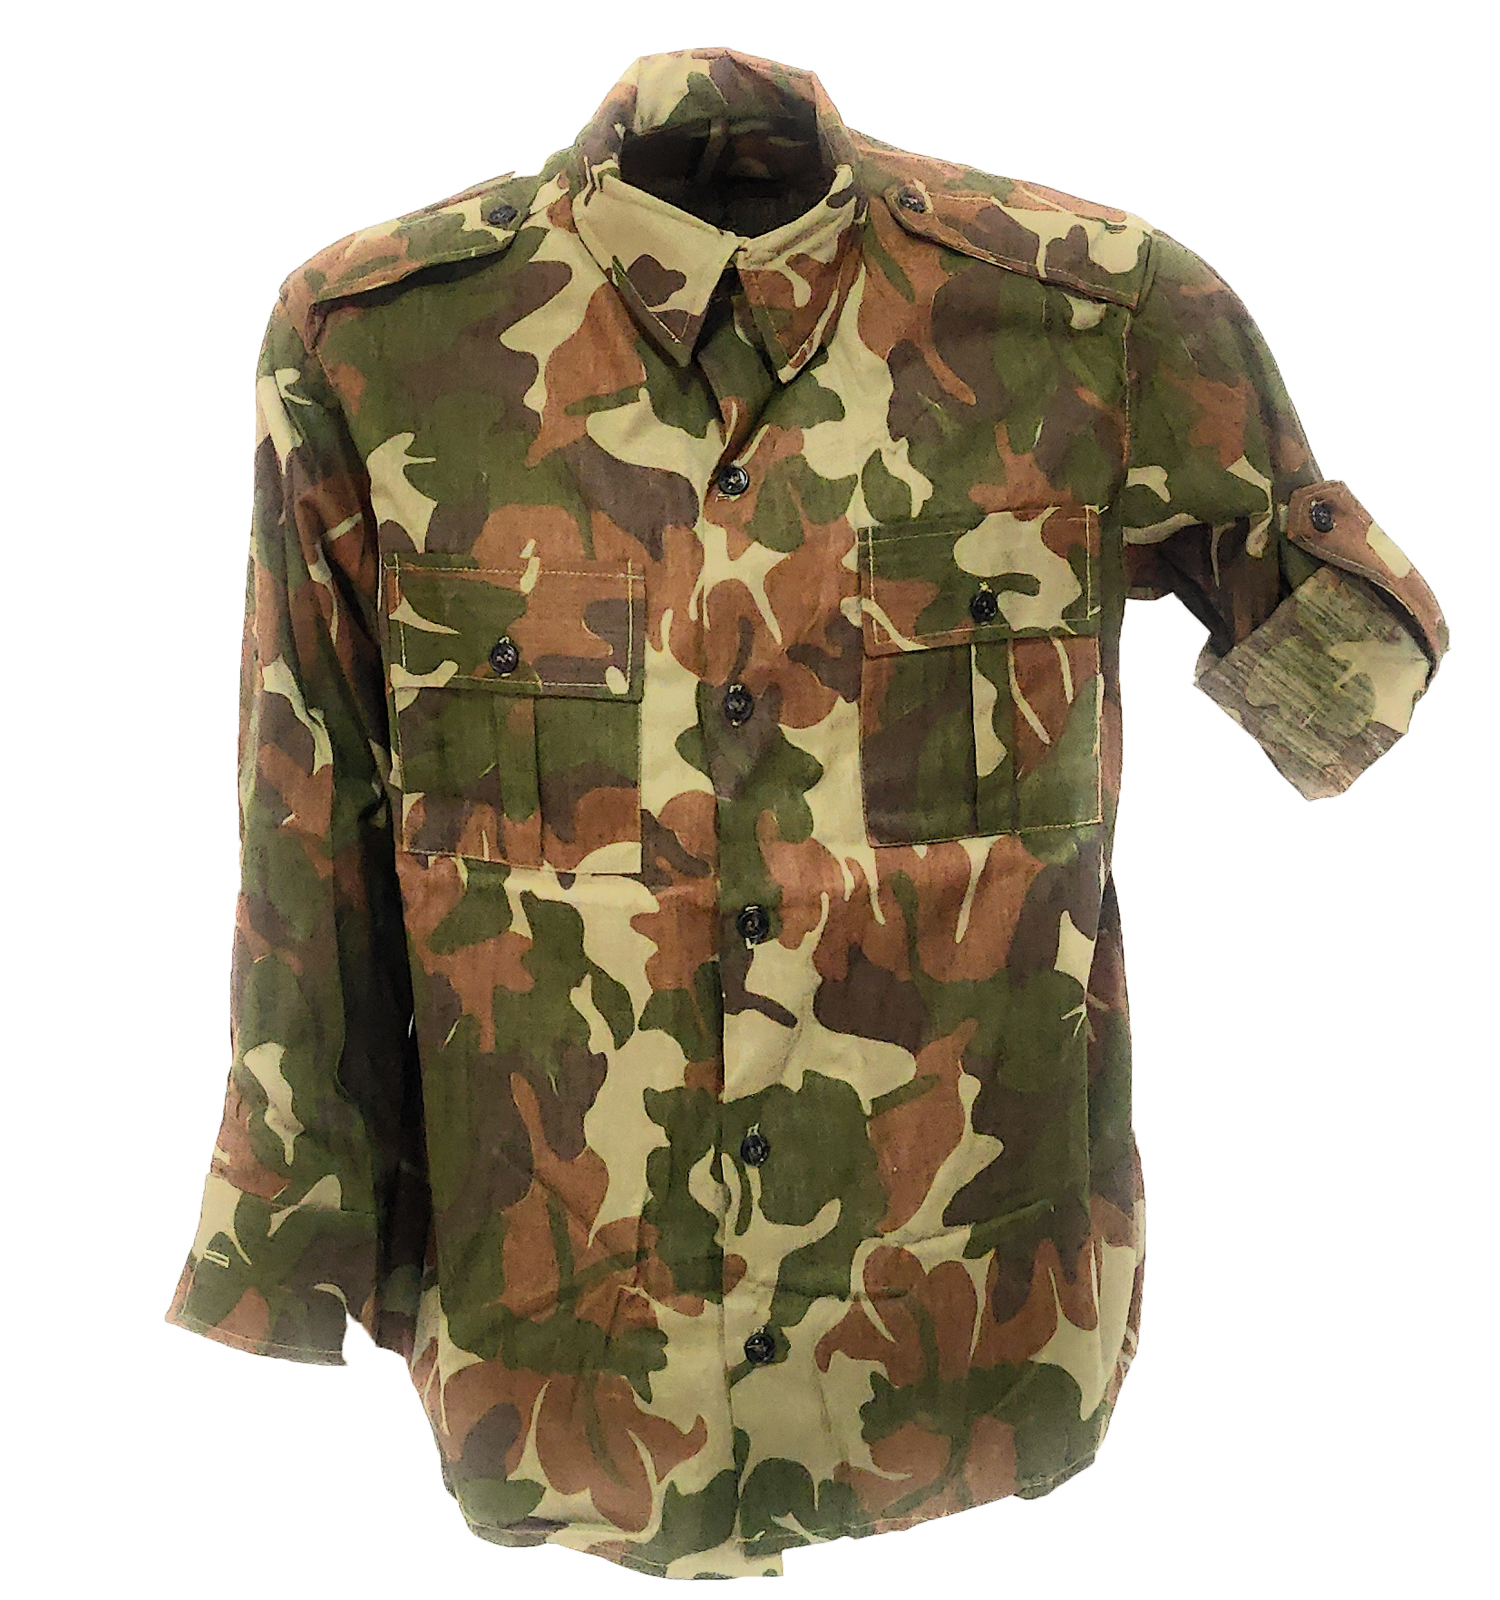 Shirt tunic military the Croatian camouflage cotton men slim